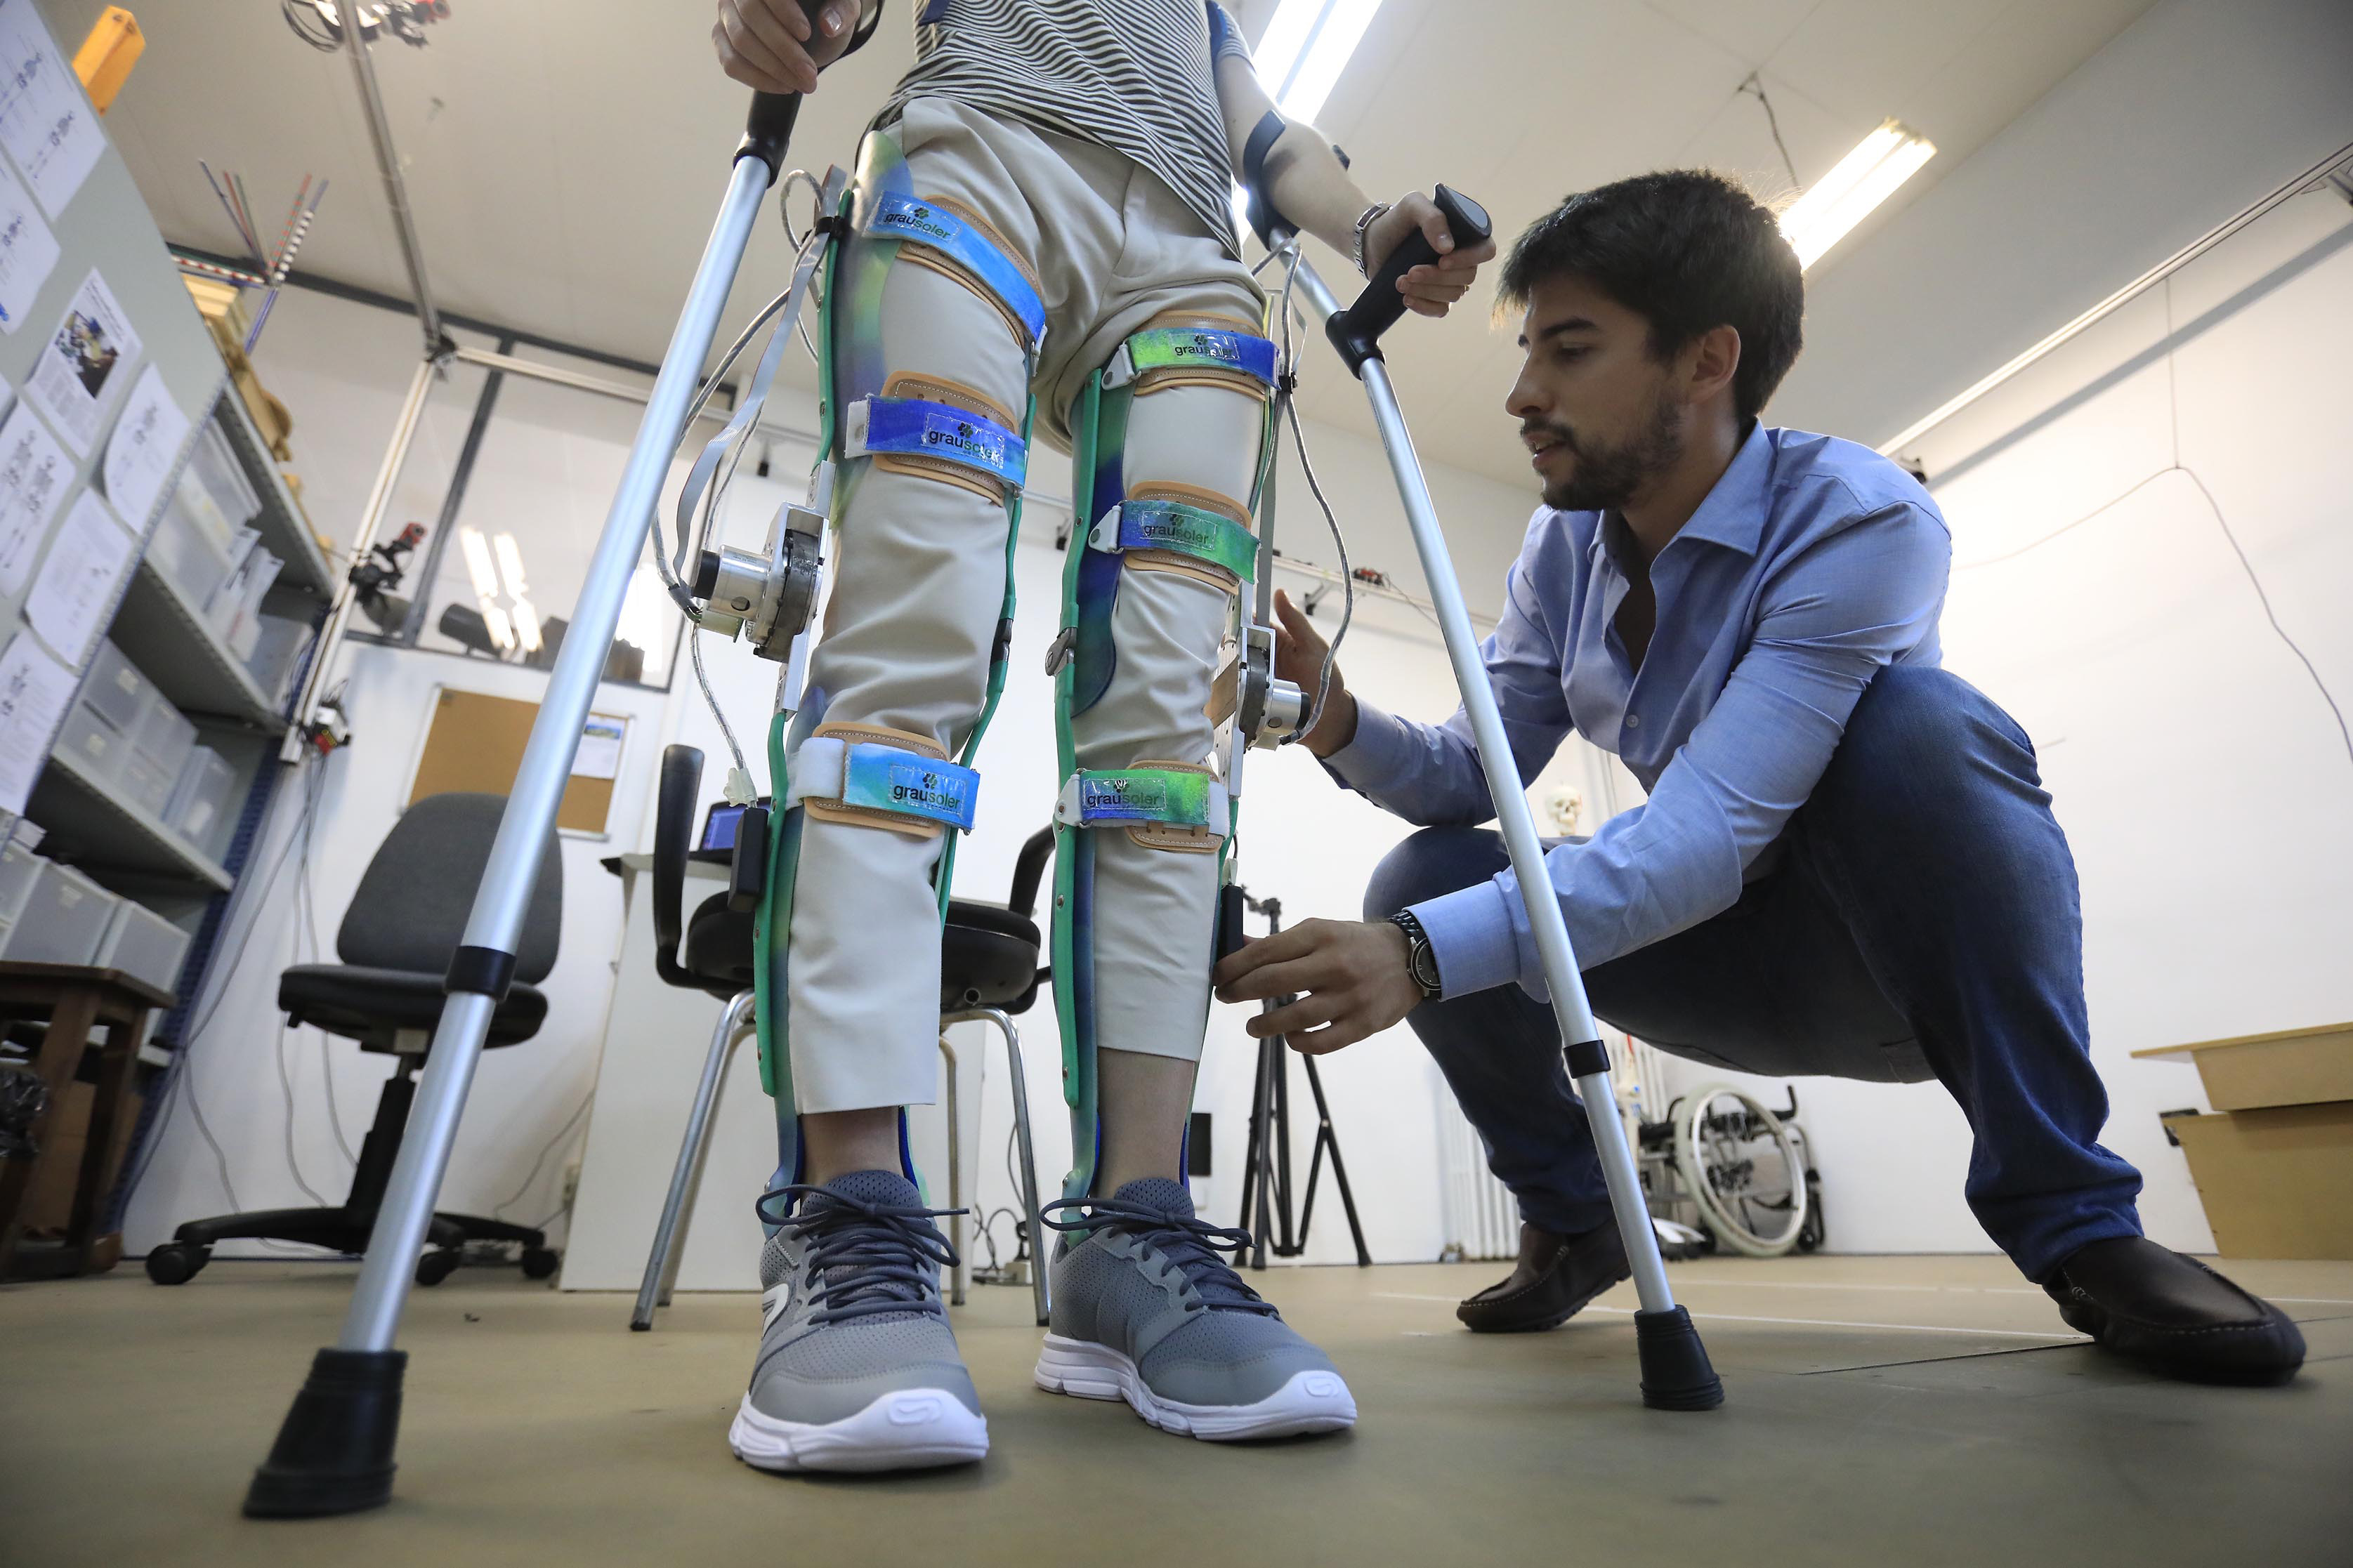 ABLE: Assistive Biorobotic Low-cost Exoskeleton